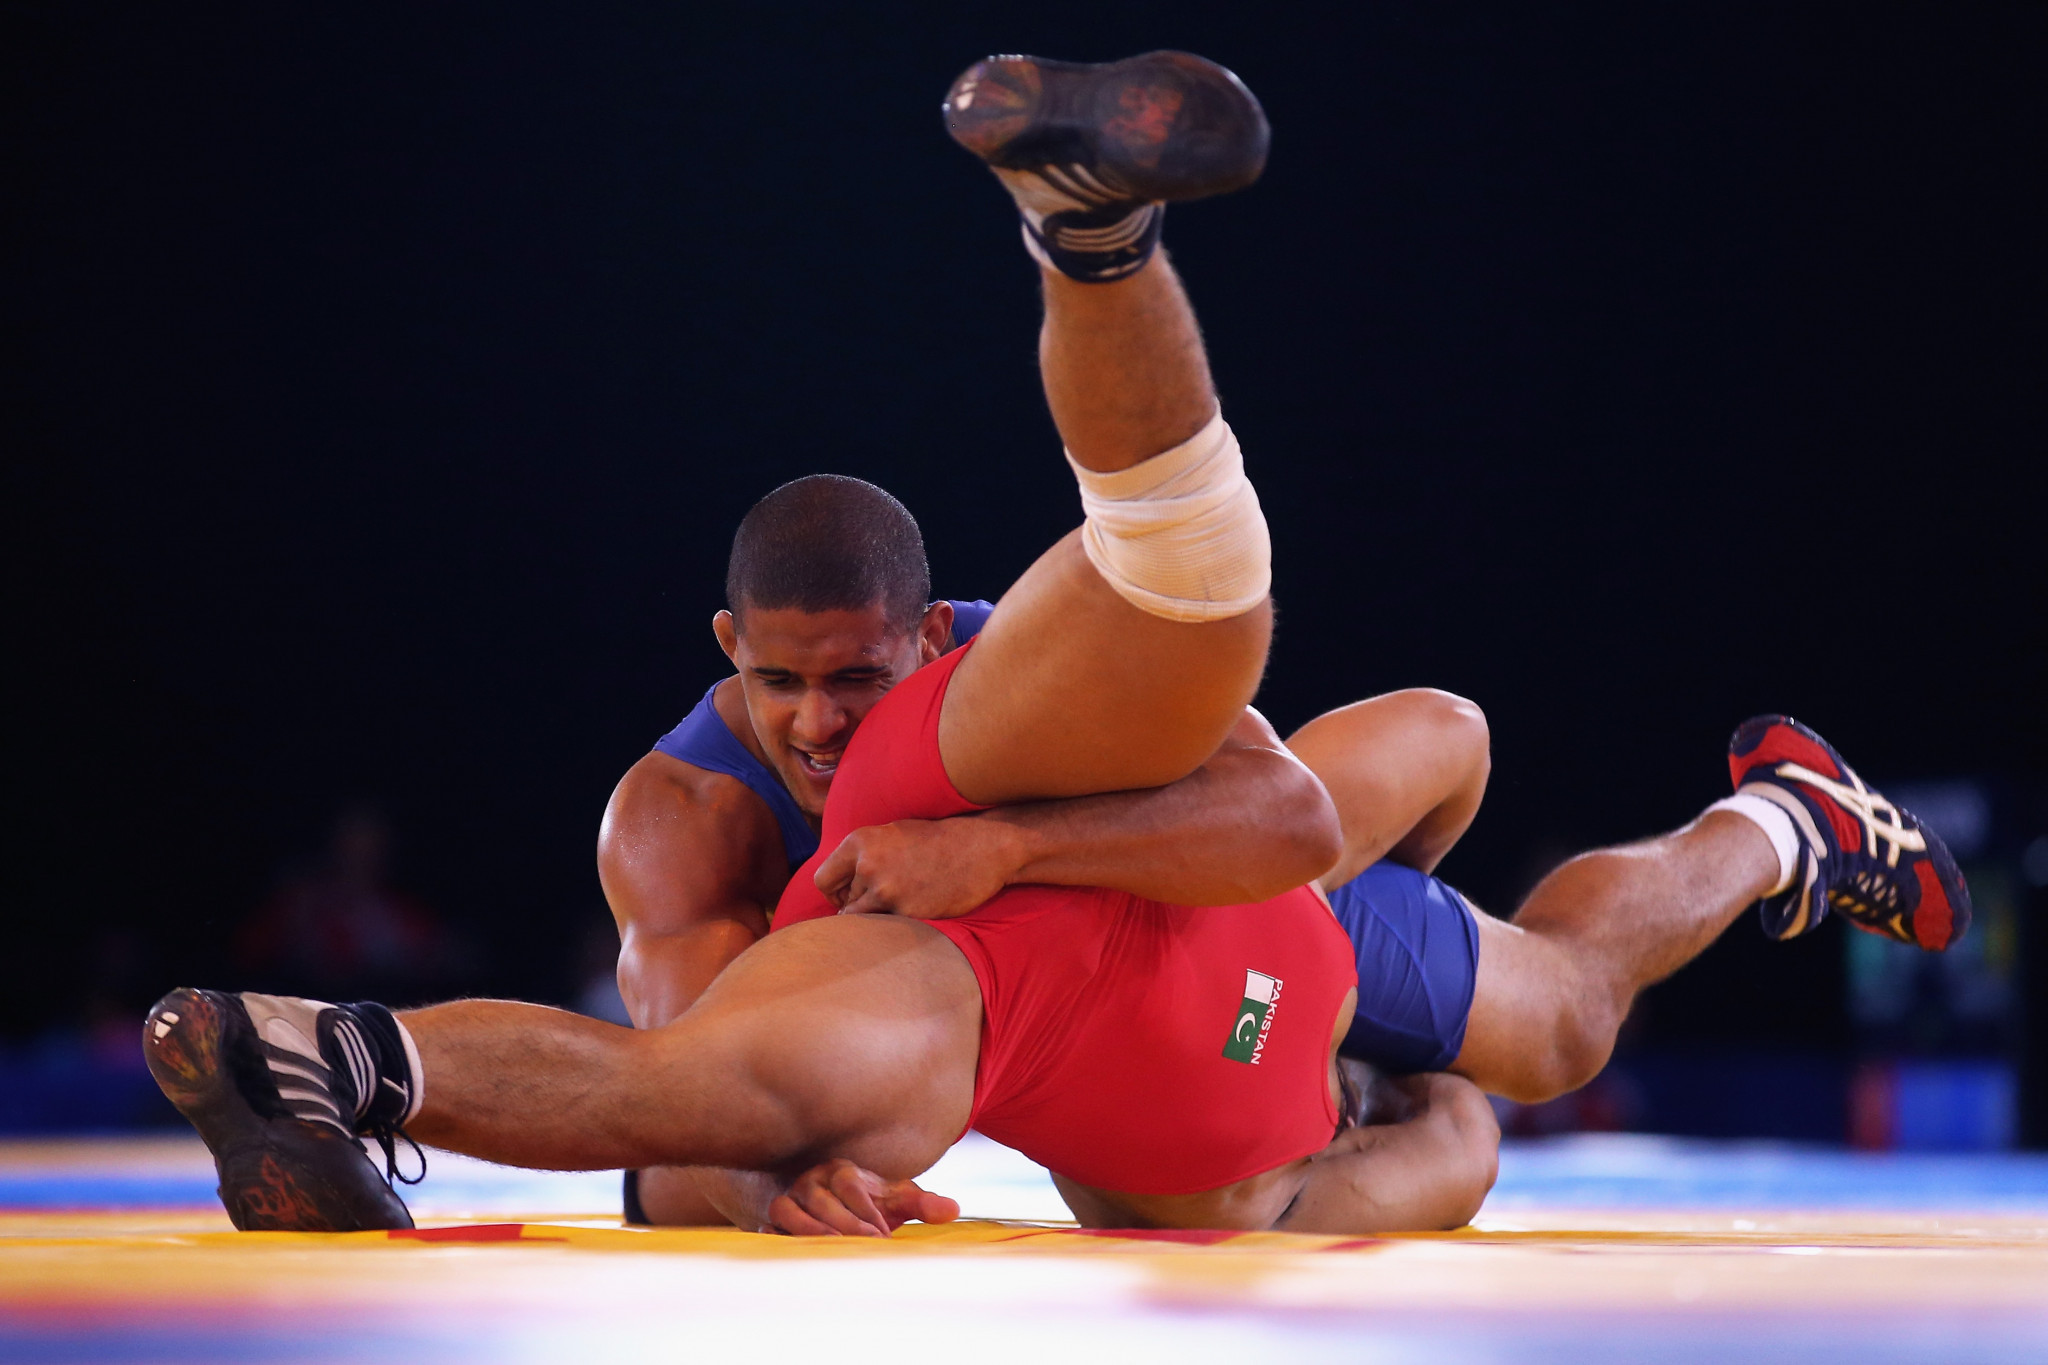 England name Gold Coast 2018 wrestling squad